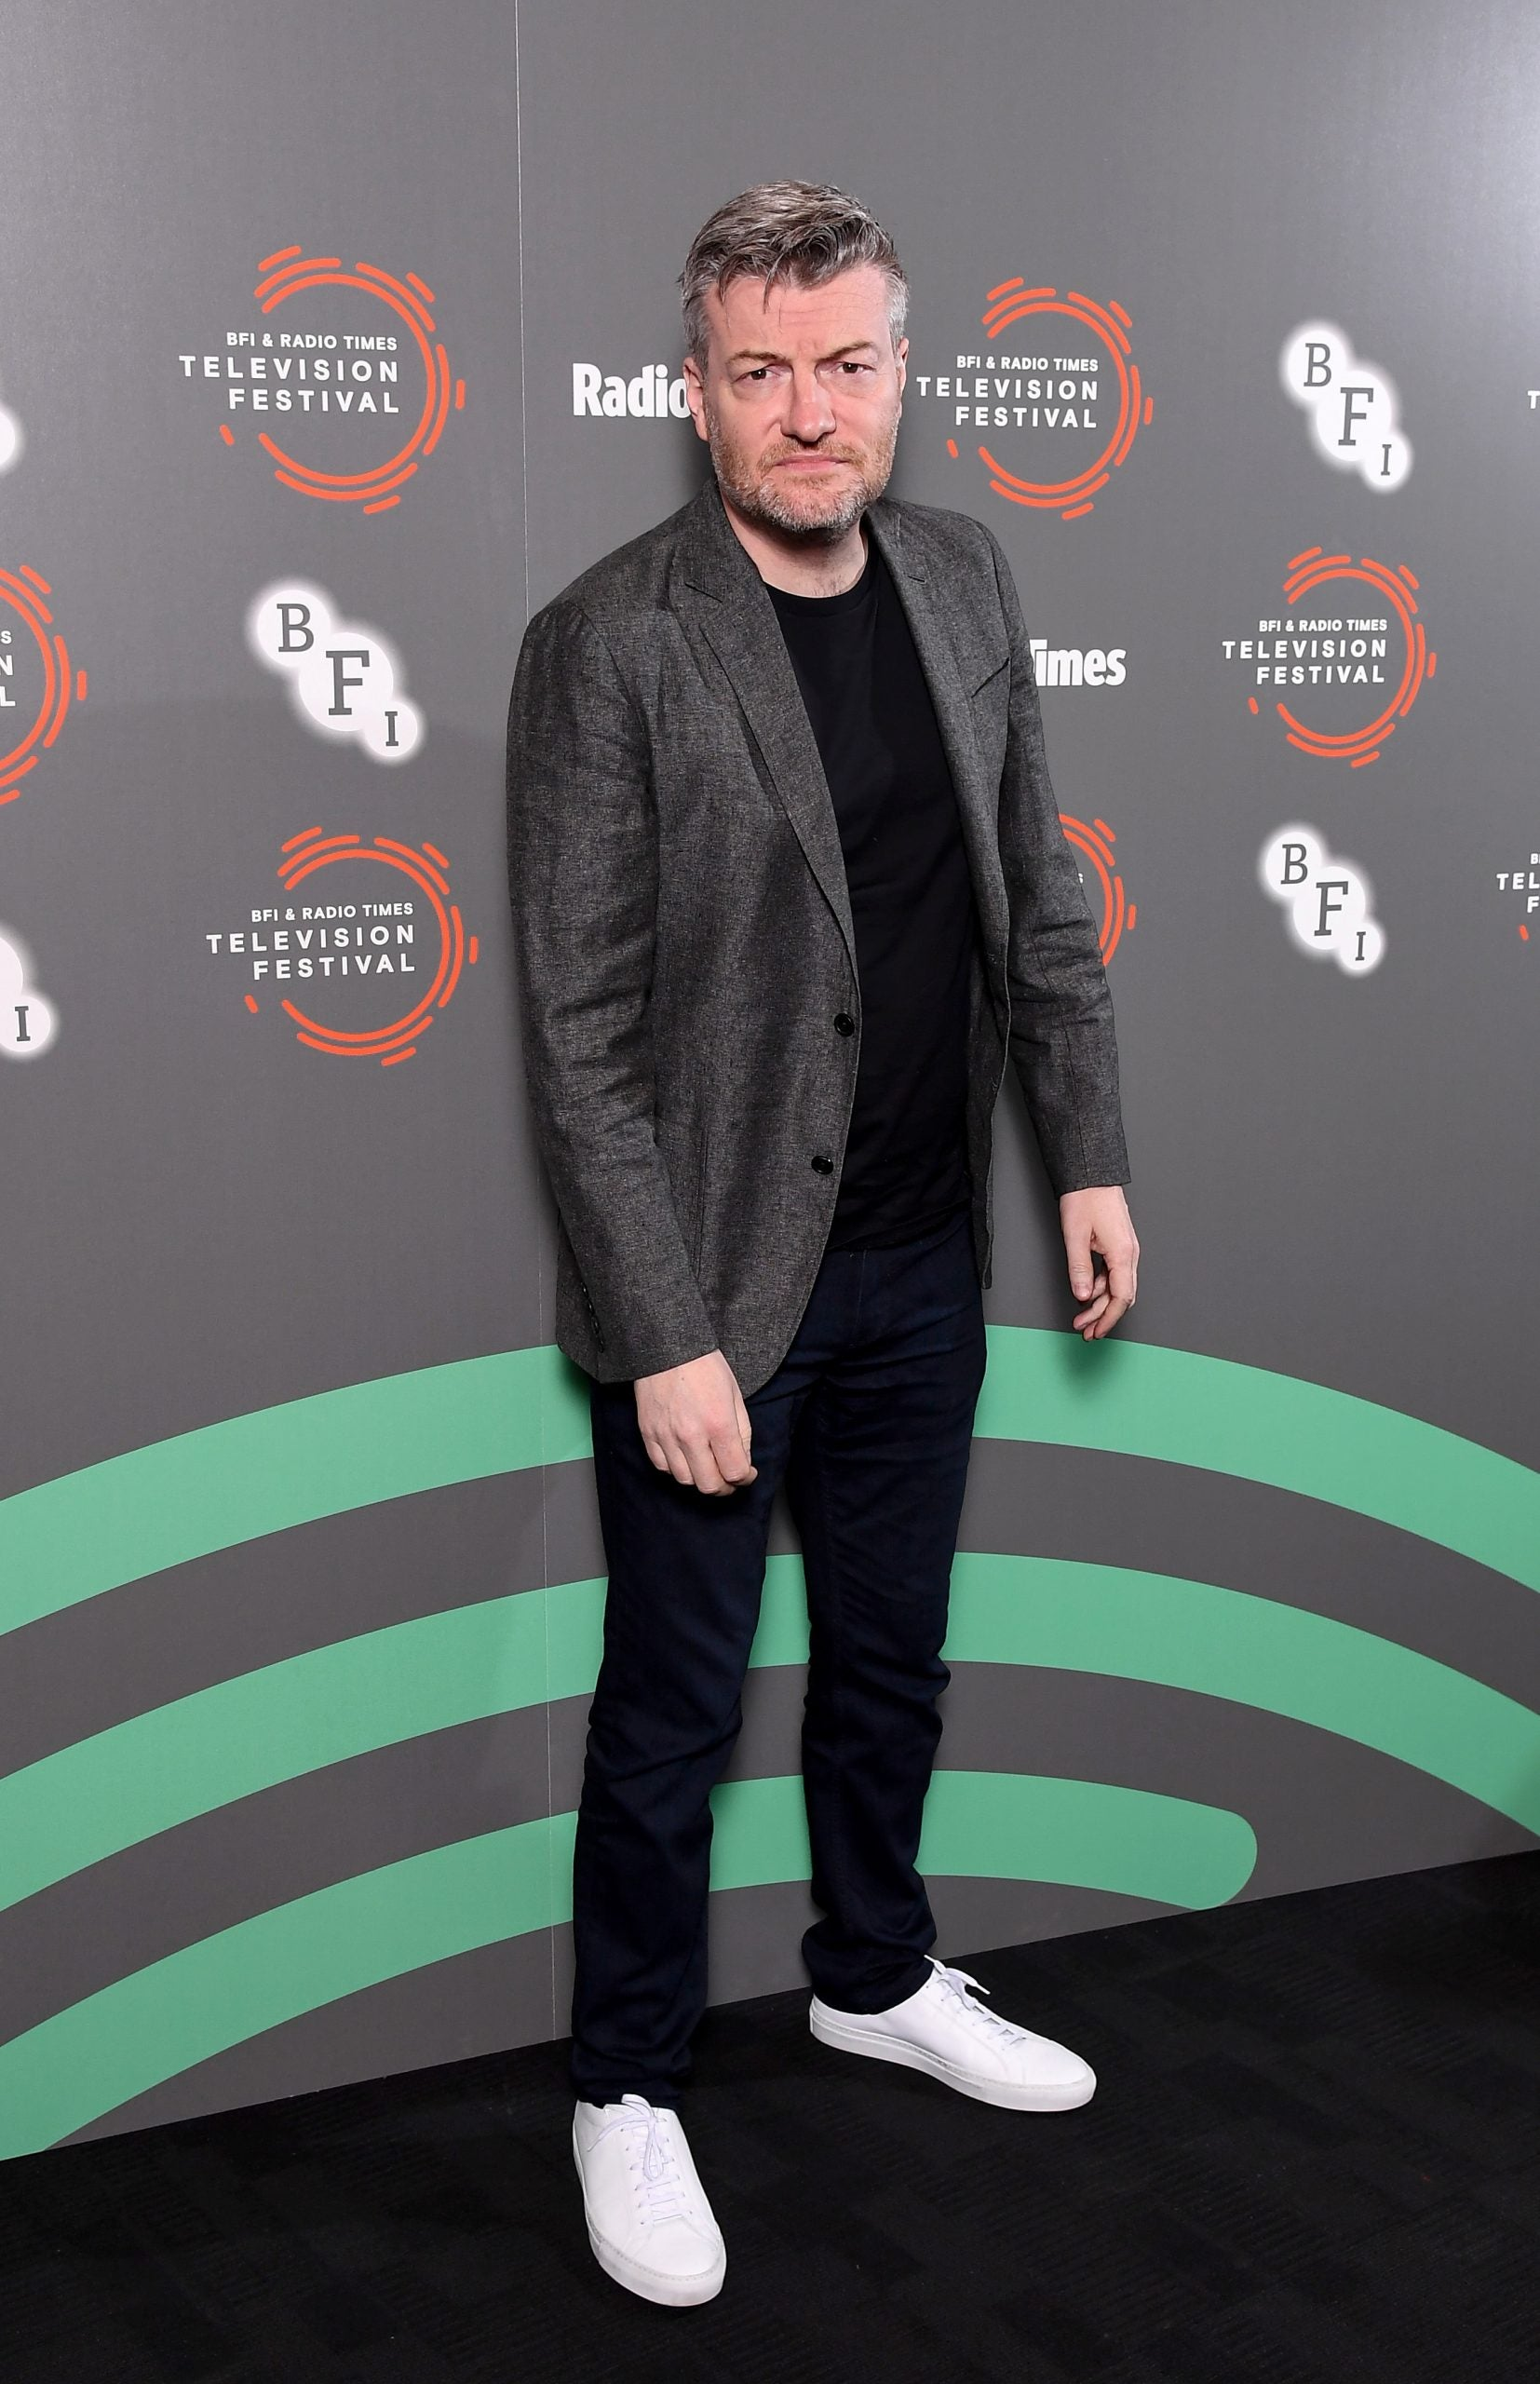 Charlie Brooker's Antiviral Wipe is frequently more rage-inducing than funny